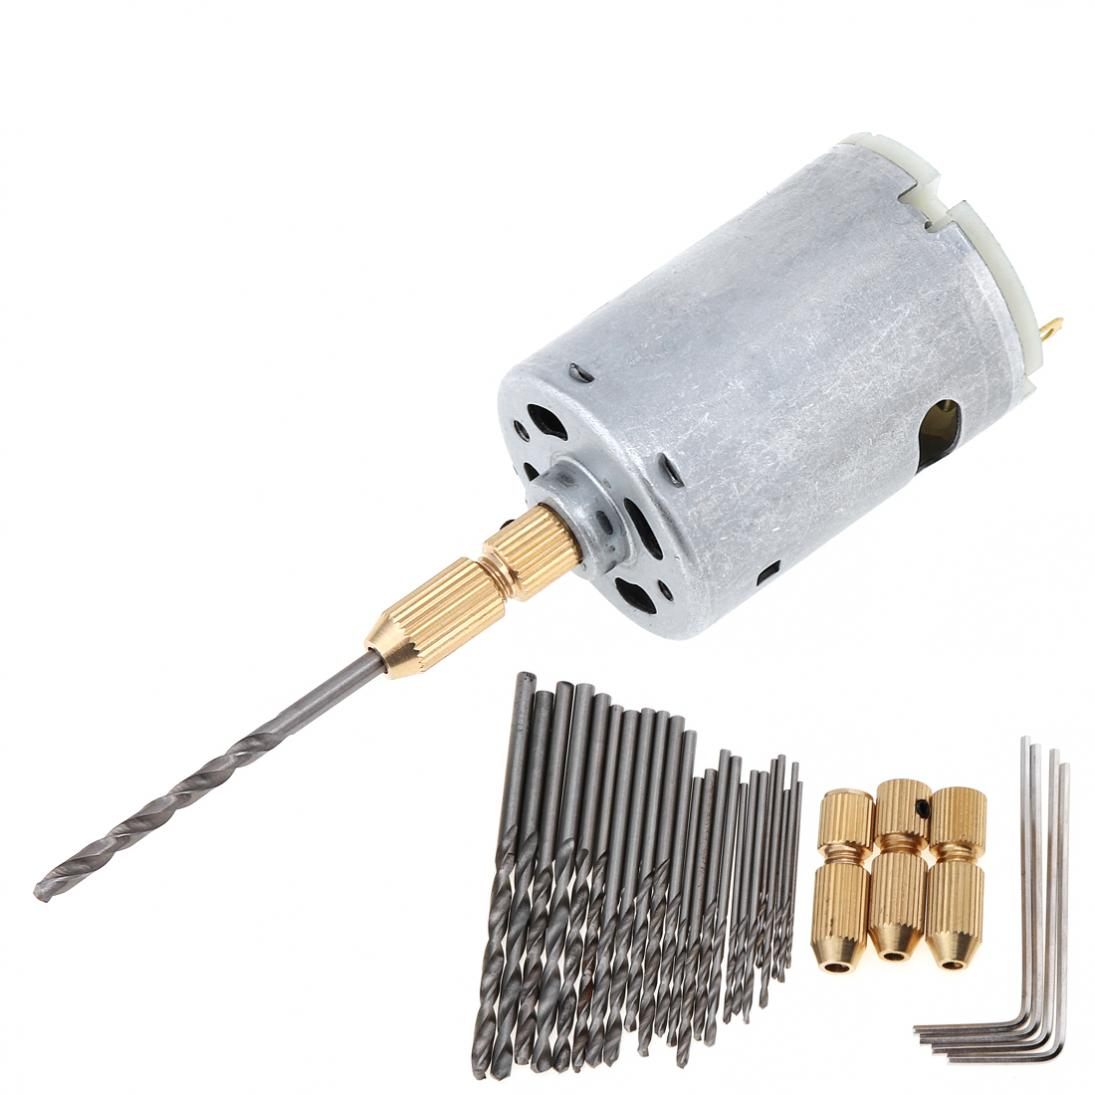 12V DC Mini Electric Motor DIY Hand Drill with 3pcs Brass Drill Collet 24pcs Micro Twist Drill and 4pcs Hexagon Screw Wrench цены